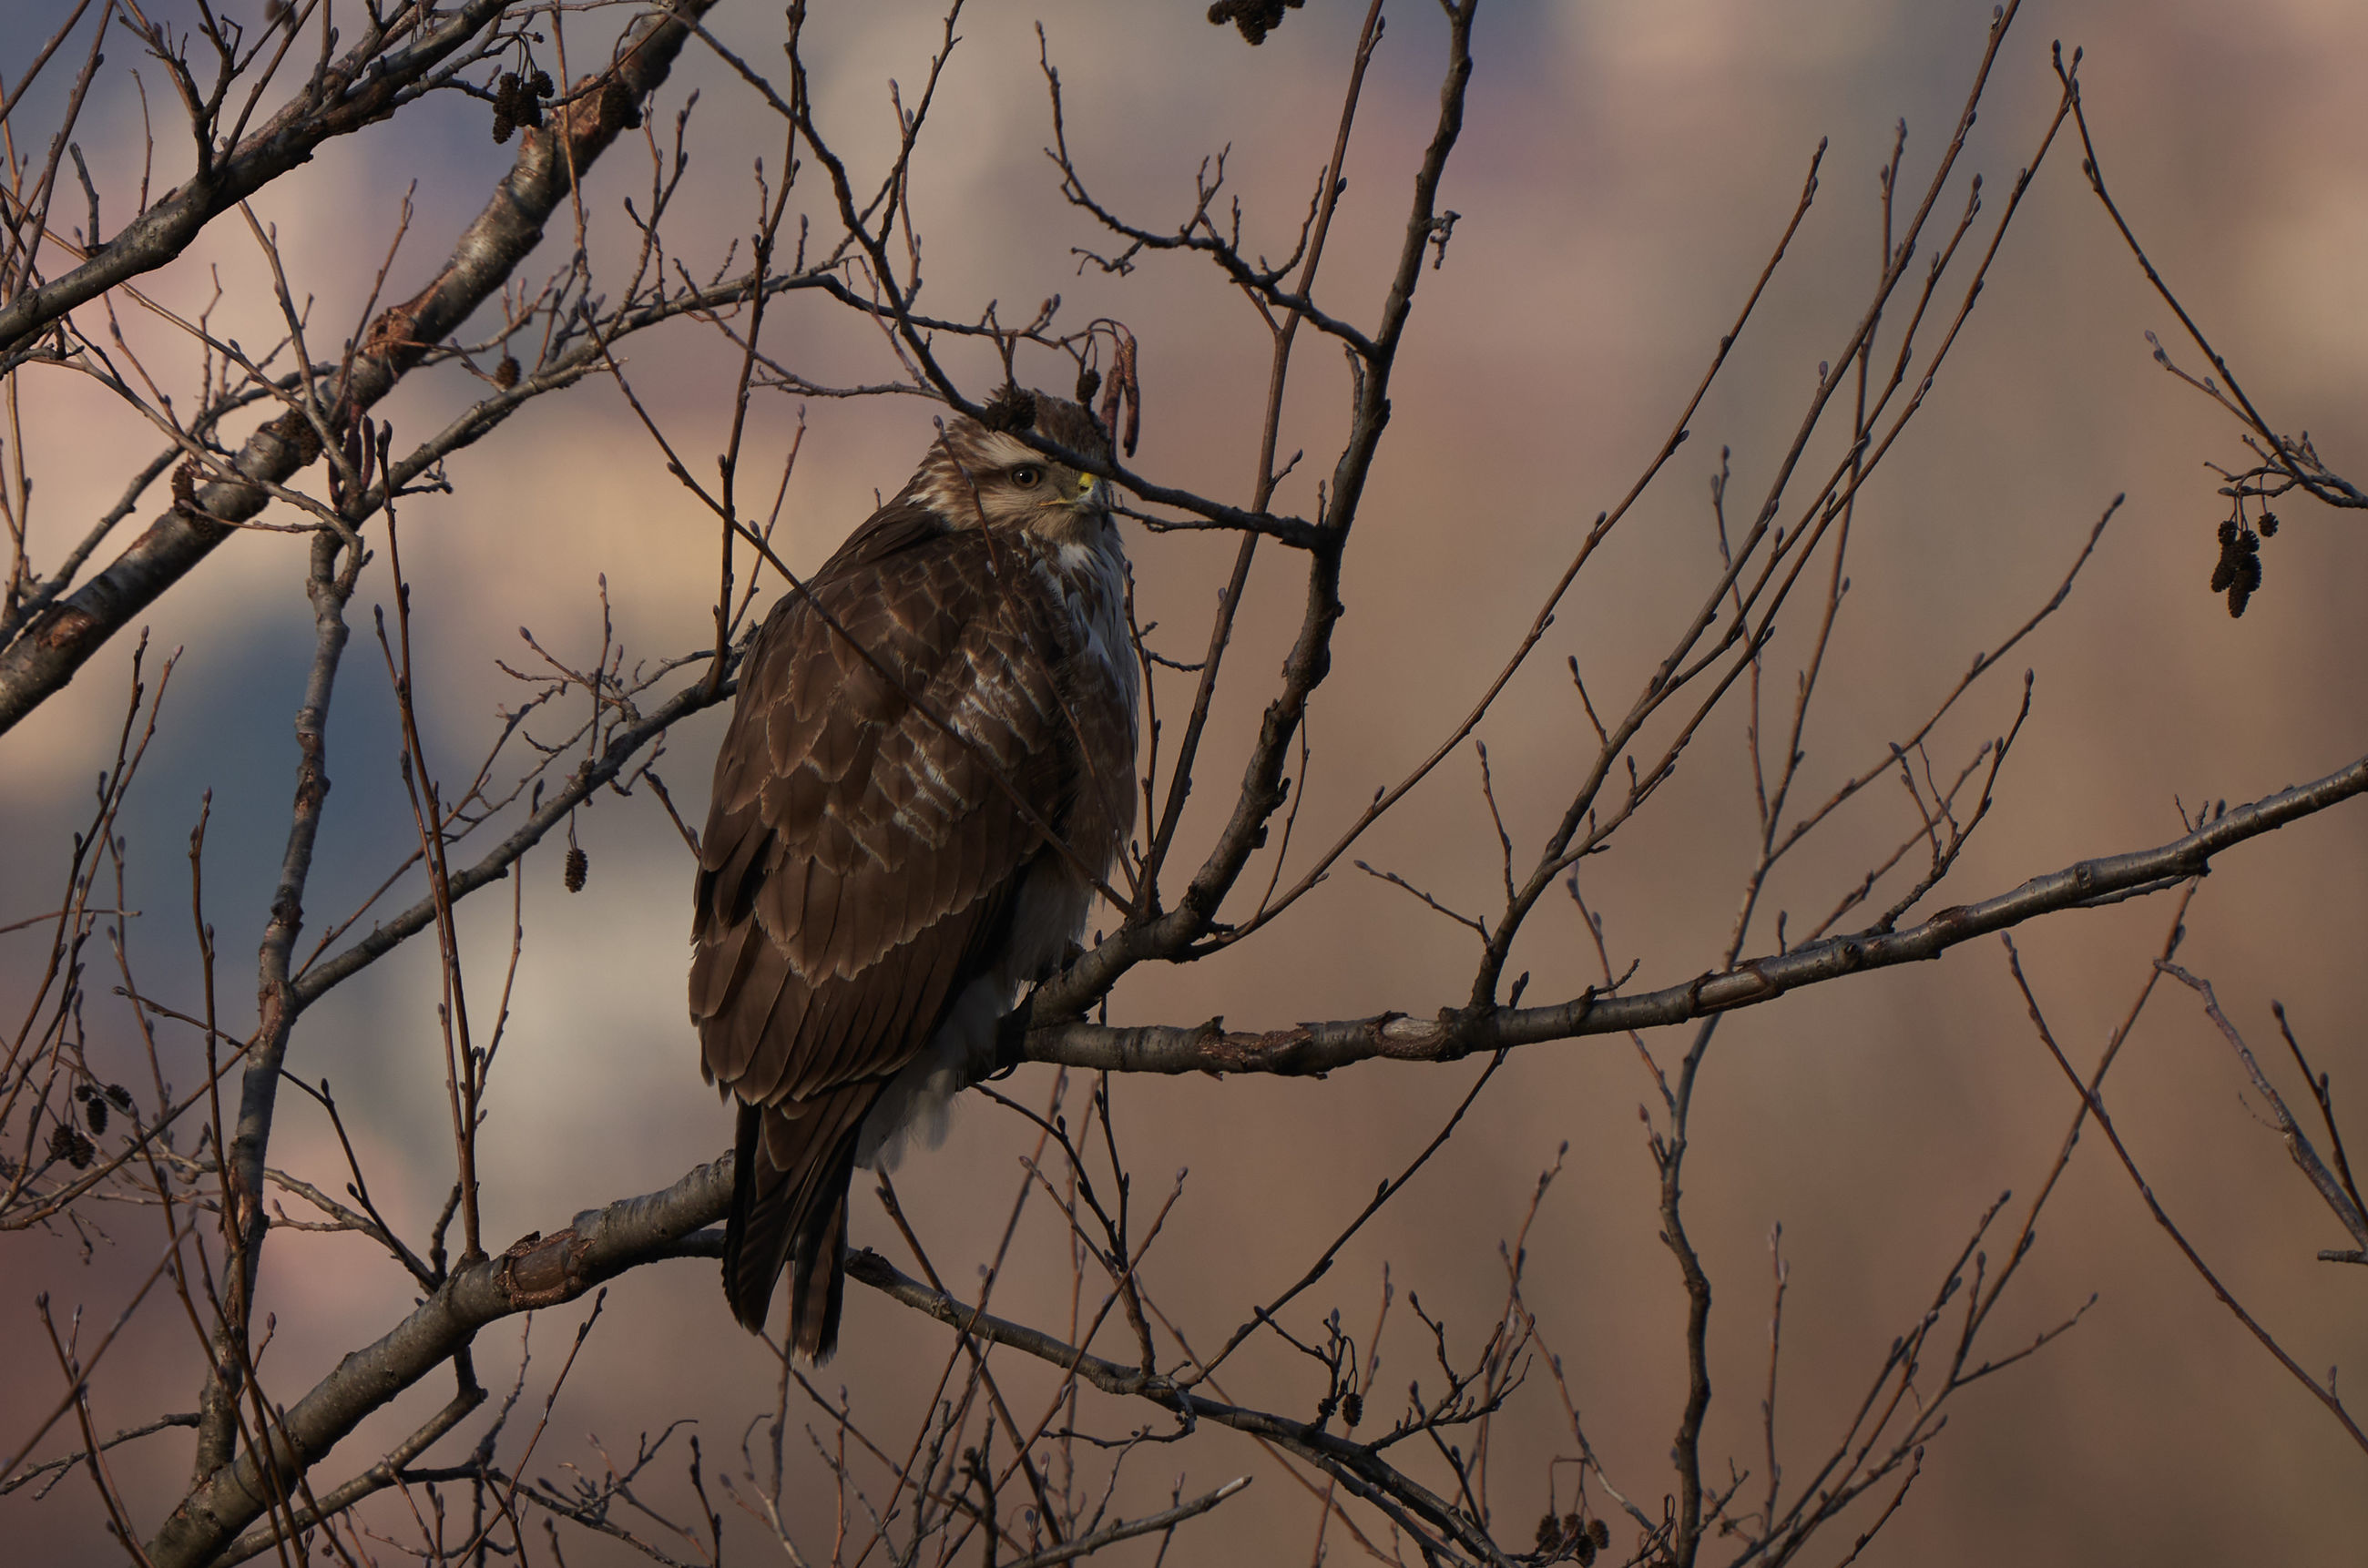 bird, animal themes, wildlife, animal, animal wildlife, perching, tree, branch, bird of prey, nature, one animal, sky, plant, no people, bare tree, sunset, eagle, outdoors, beauty in nature, vulture